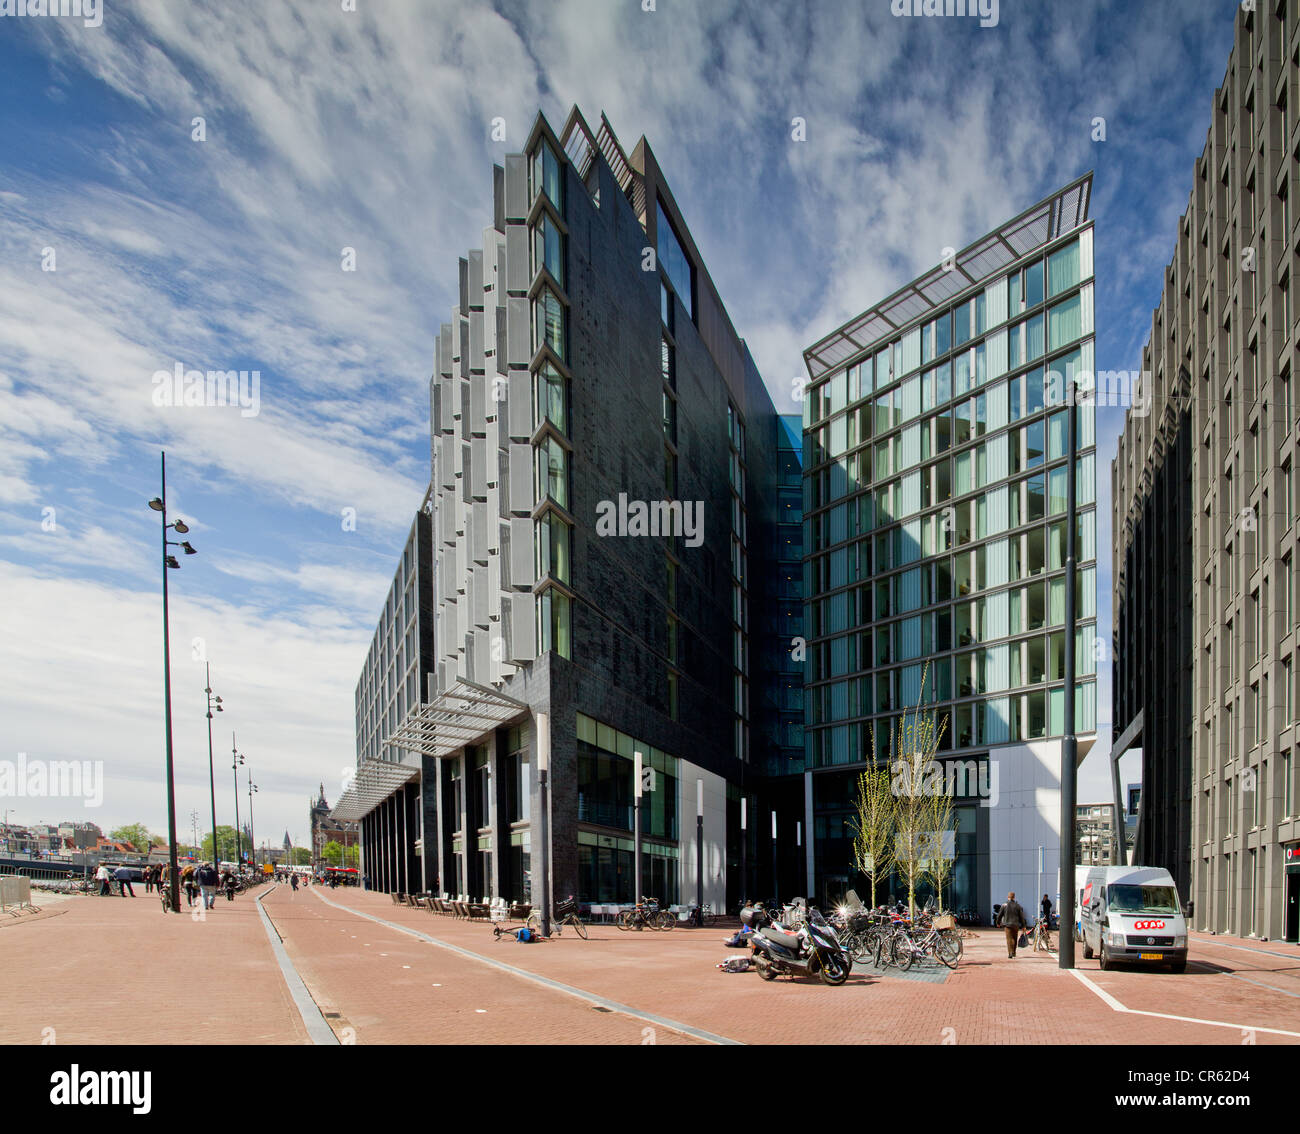 Modern Architecture at Oosterdokseiland in Amsterdam - Stock Image